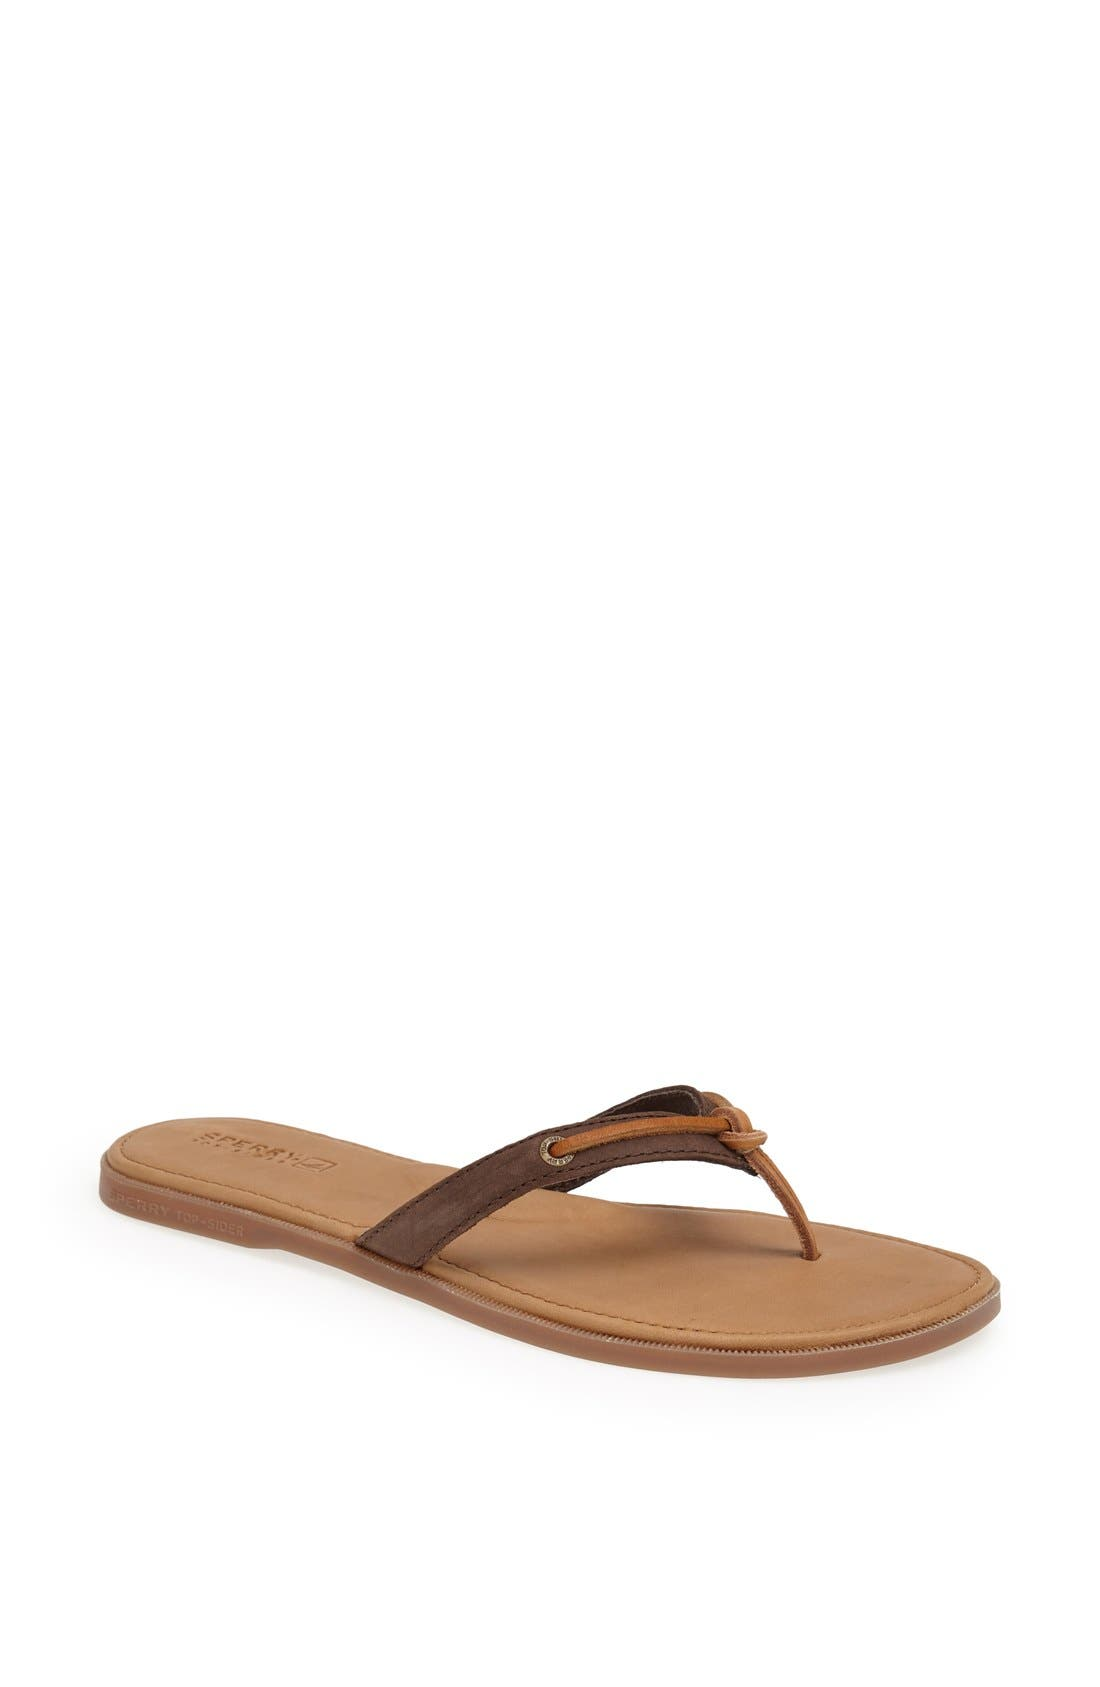 Alternate Image 1 Selected - Sperry Top-Sider® 'Calla' Sandal